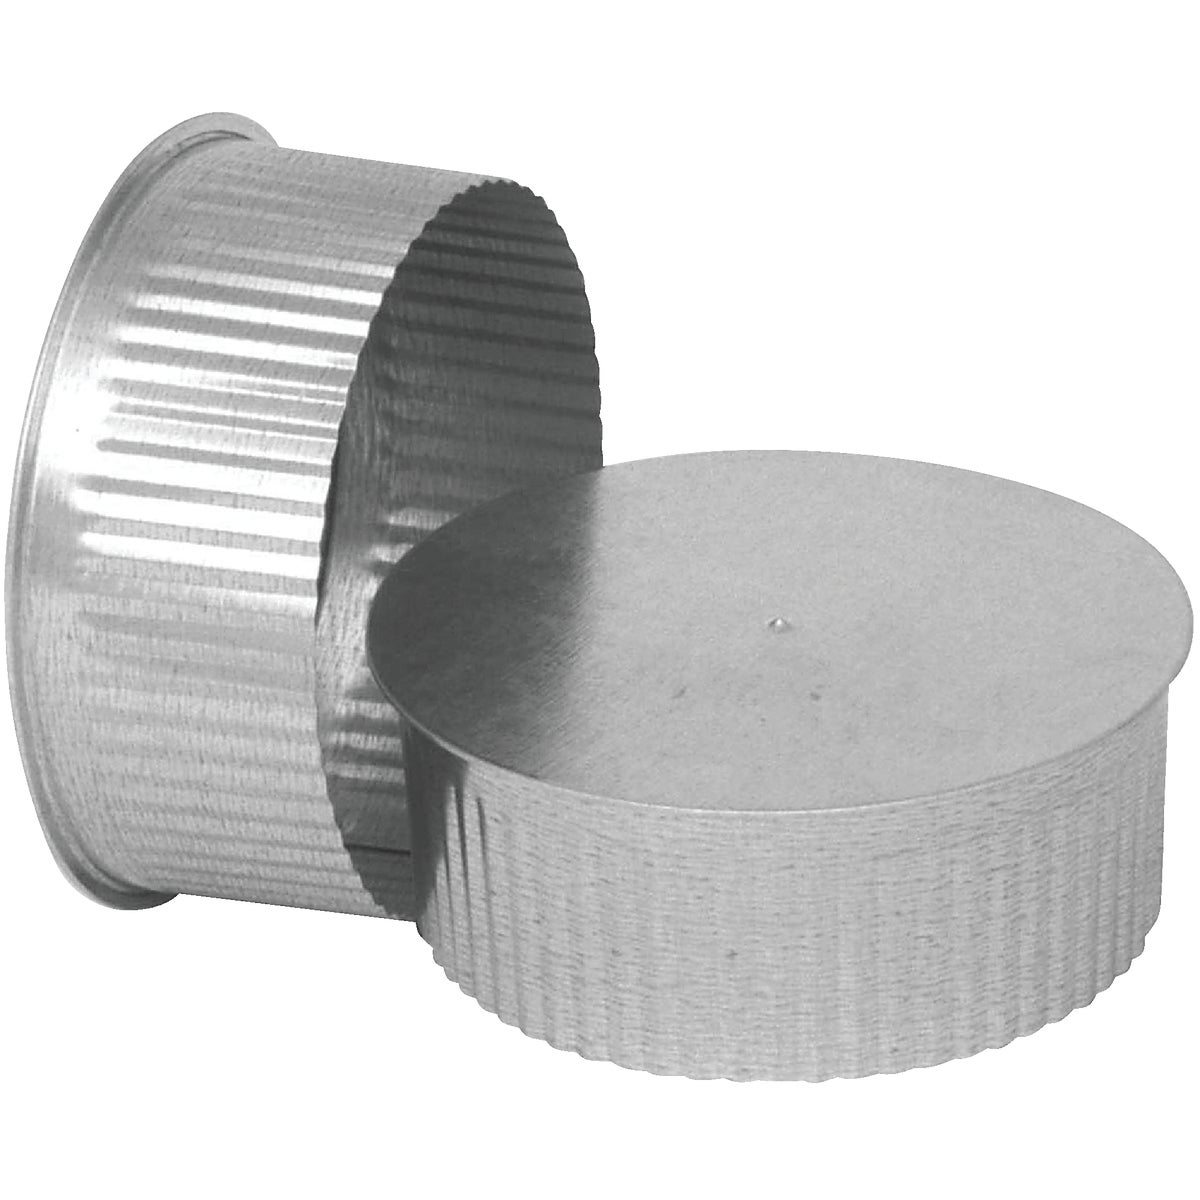 "6"" 30GA GALV TEE CAP - GV0735 by Imperial Mfg Group"